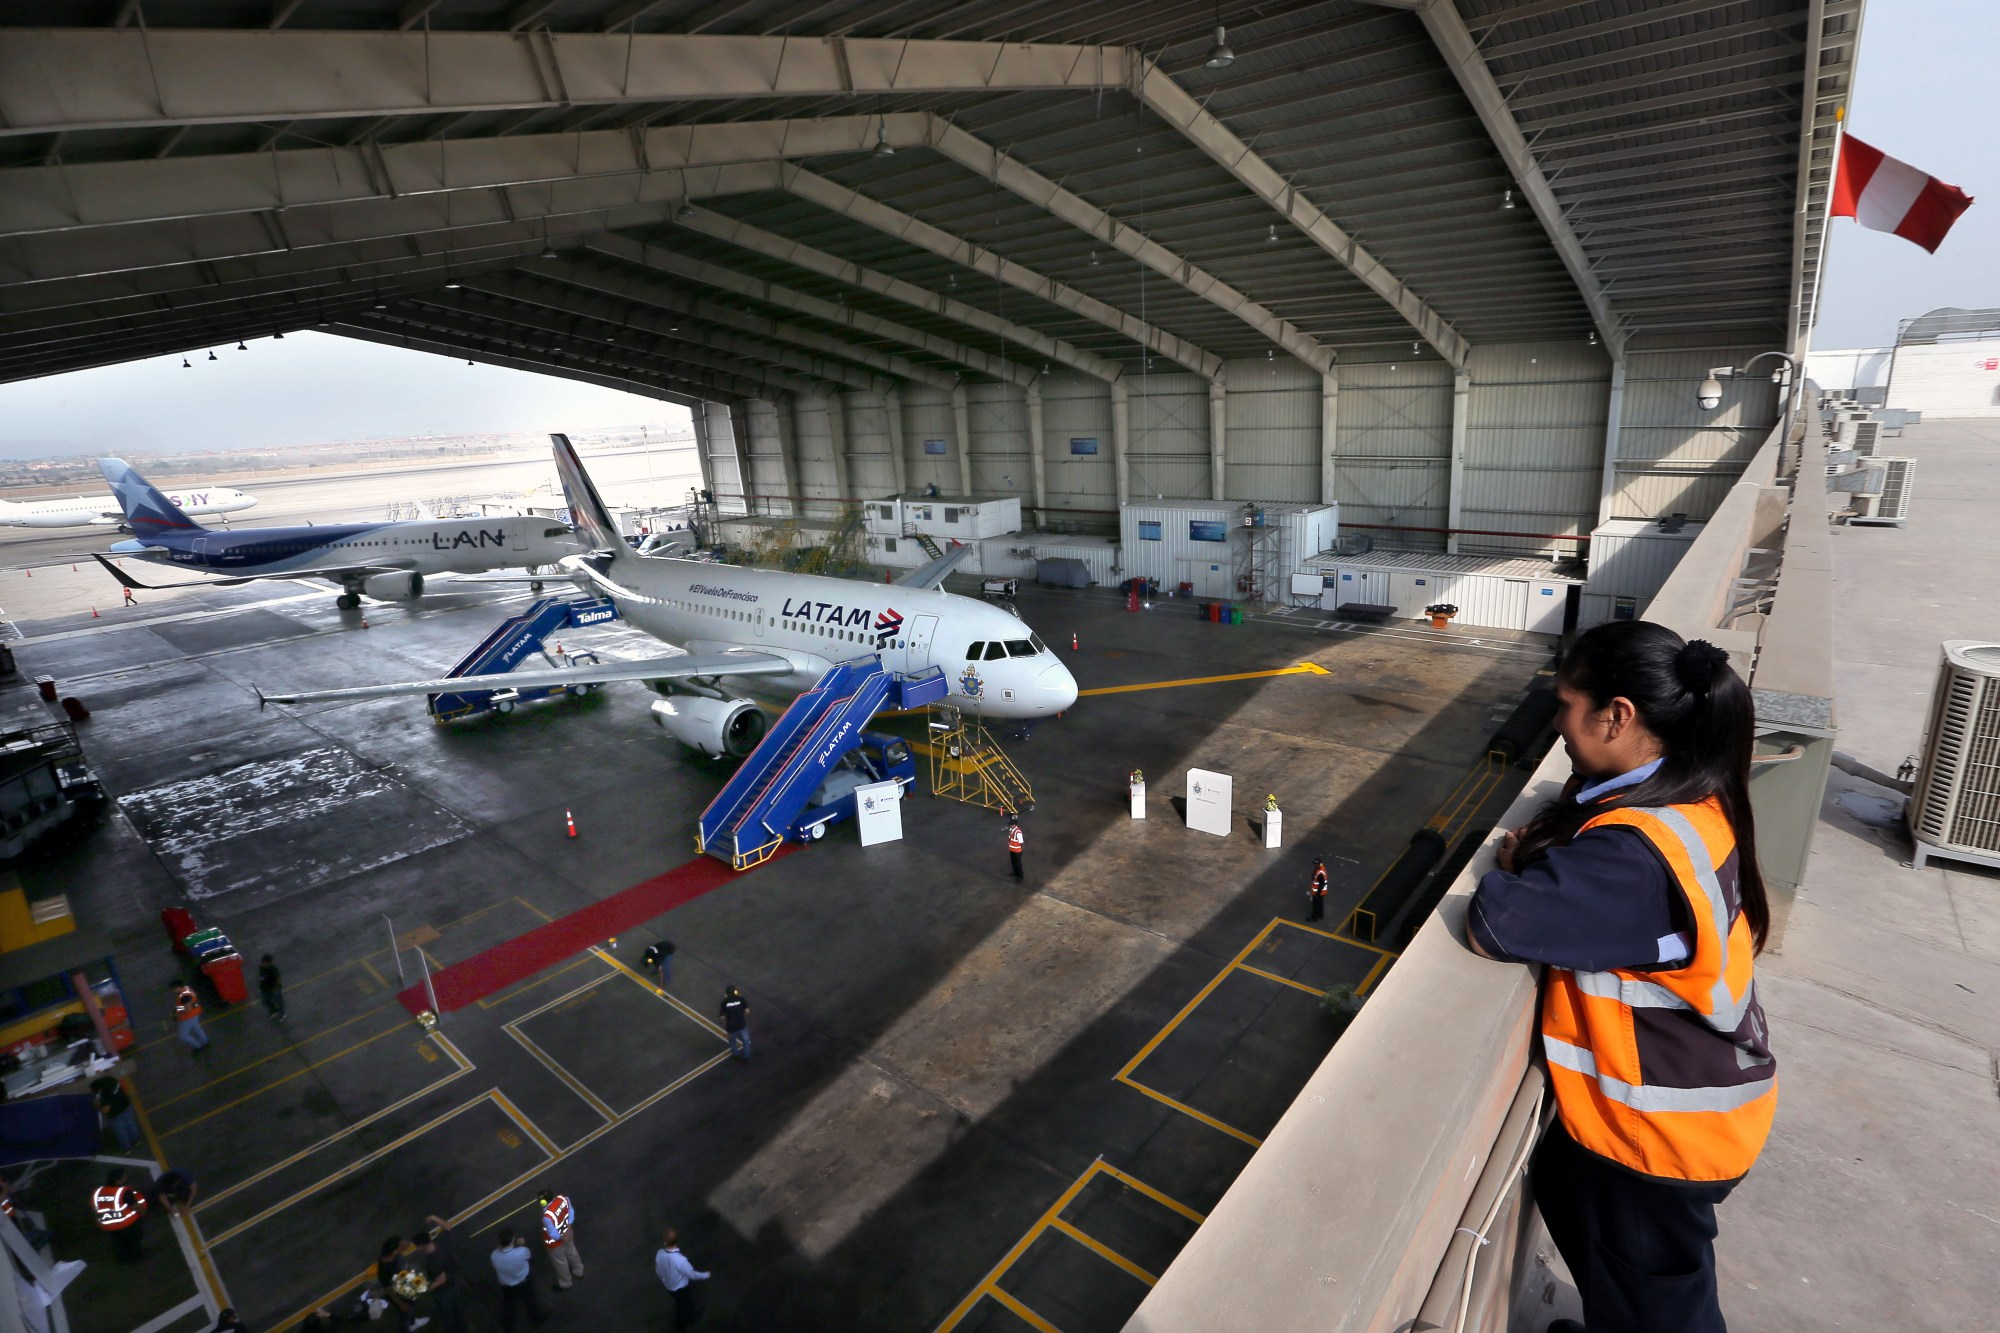 The Airbus A319 operated by LATAM Airlines is pictured at a hangar before its official presentation in Callao, Peru on January 16, 2018. (LUKA GONZALES/AFP via Getty Images)